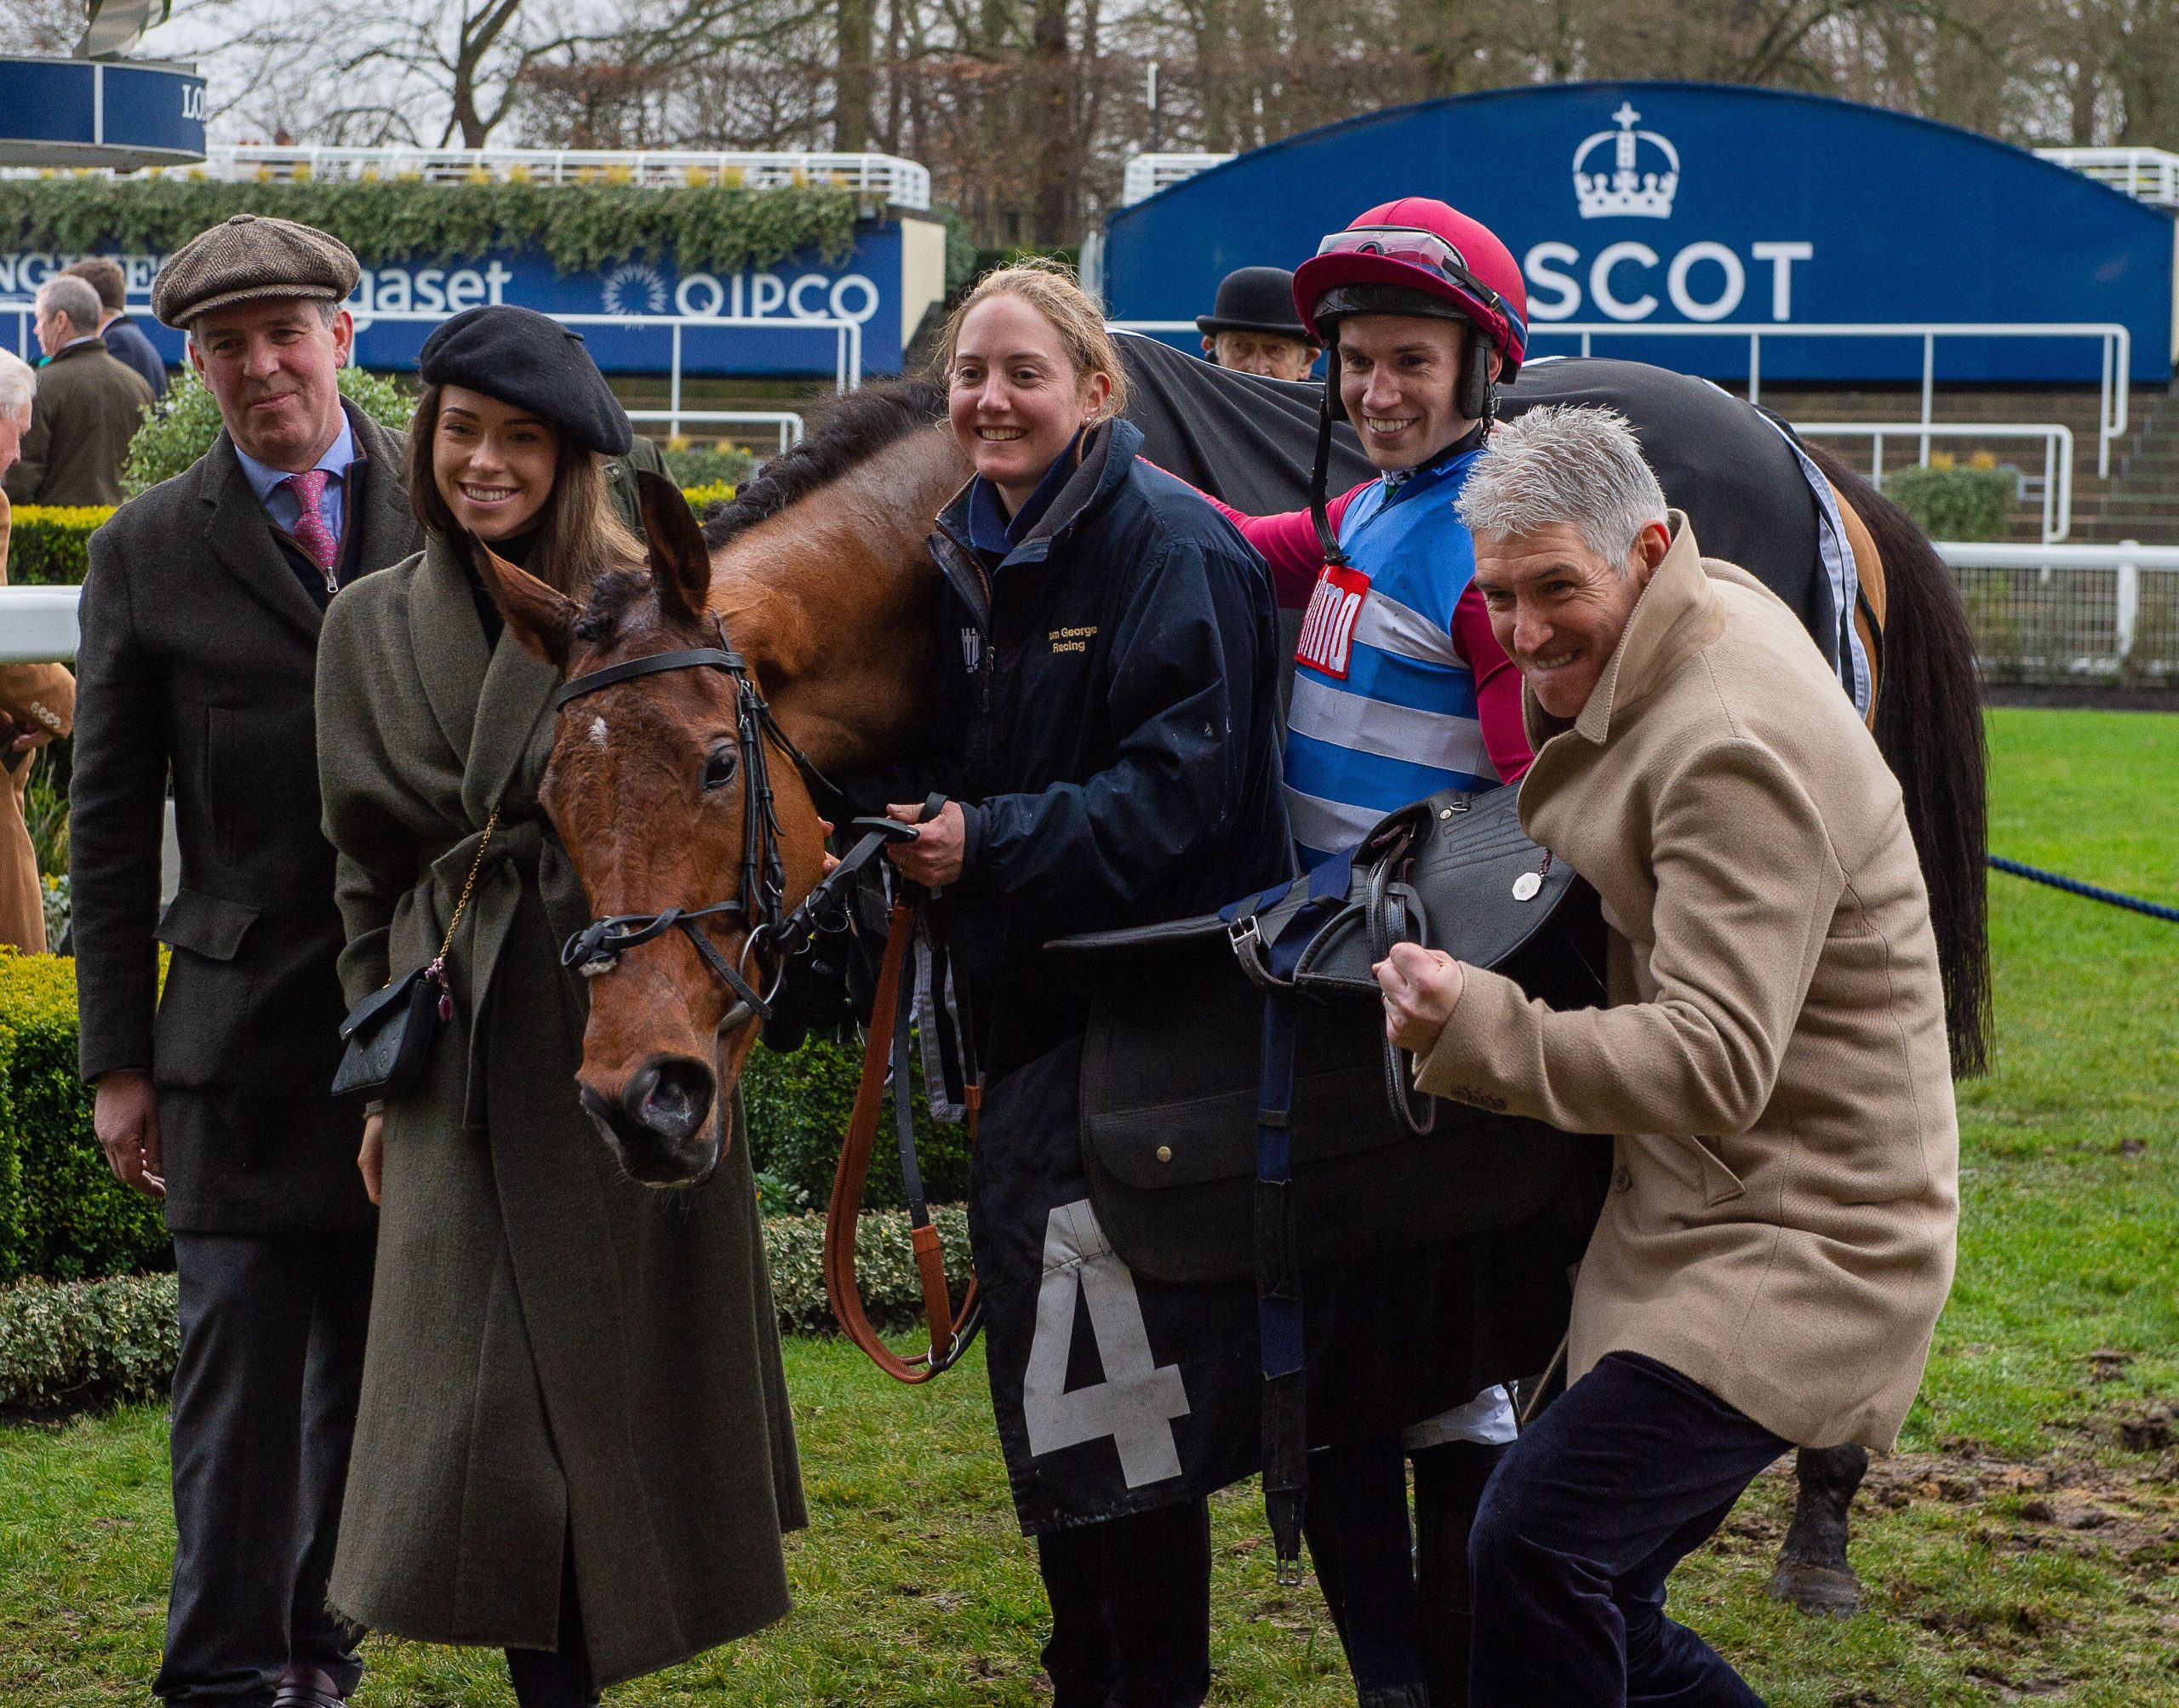 Max McNeill, Adrian Heskin and Tom George celebrates The Worlds End Grade One win at Ascot in December 2019